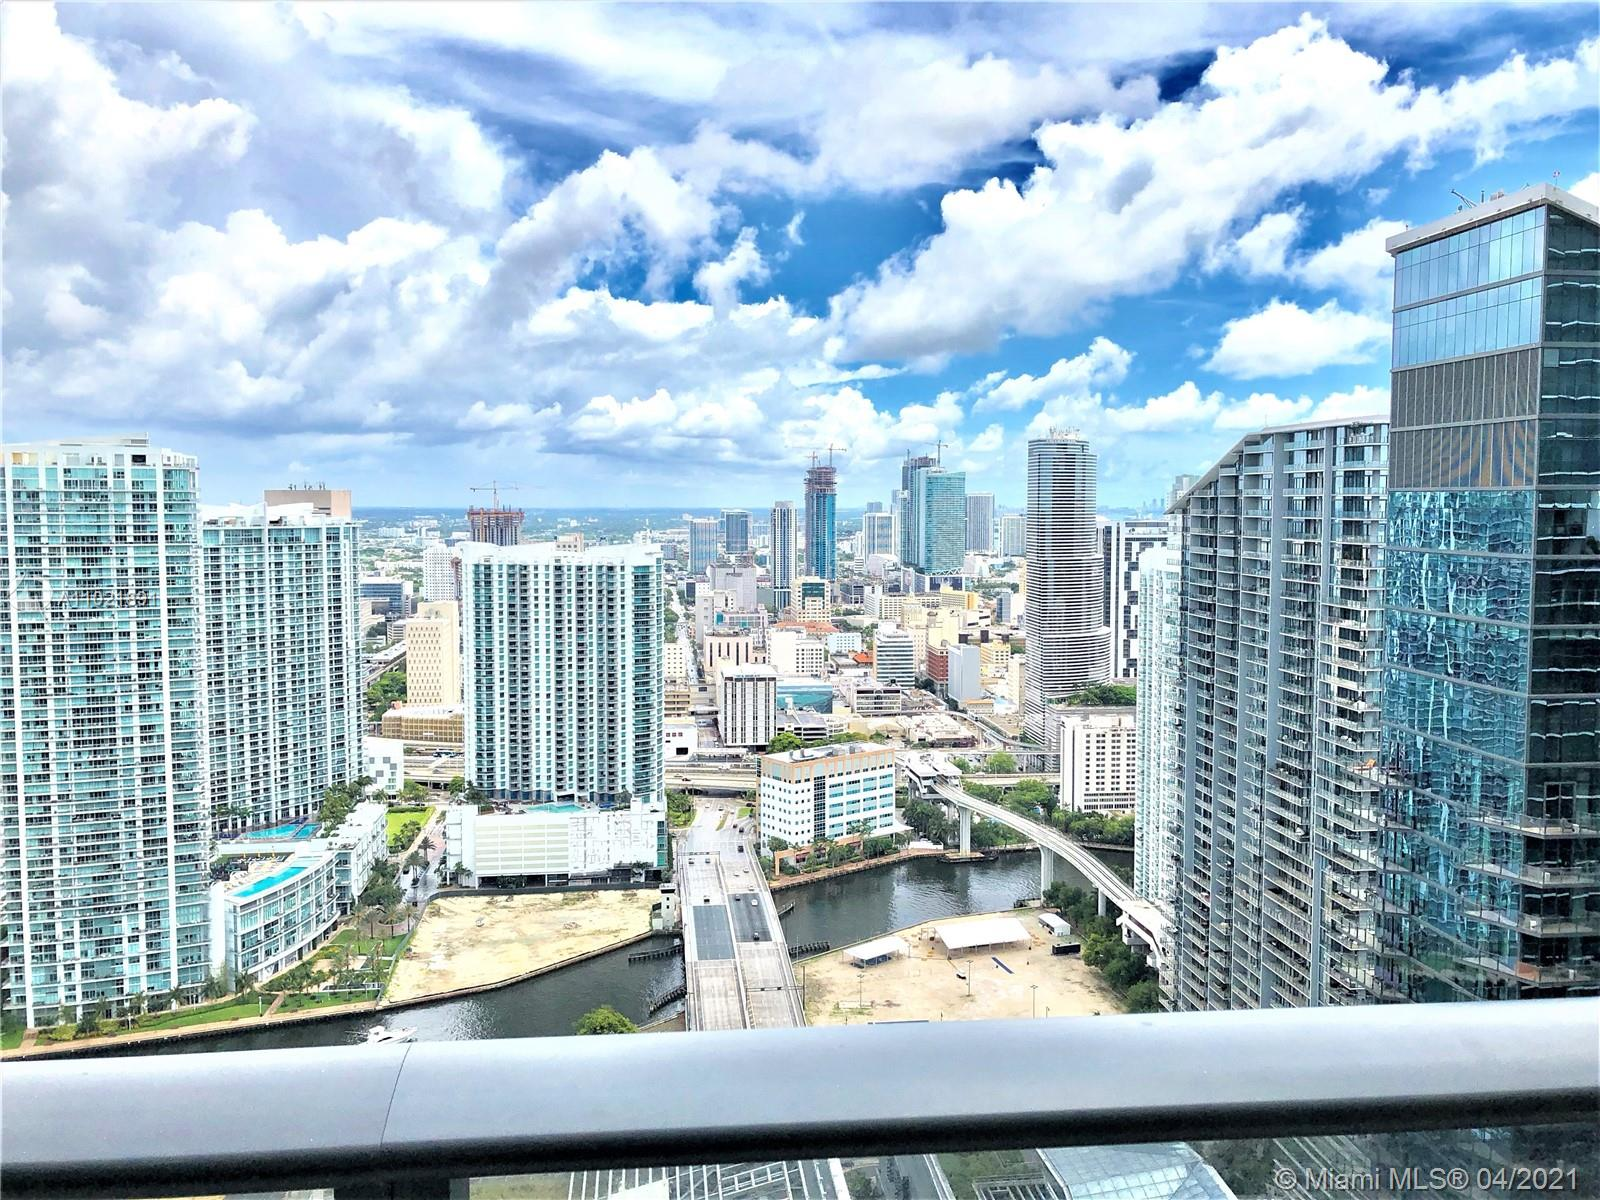 1,753 interior + 305 balcony : 2,058 total living space. Floorplan attached. Opulent PH Living - Brickell Heights East LPH 4609 - Exceptional views. 12+ foot ceilings. 3 full en-suites plus additional half bath for guests. Design offers an additional office/den, a separate large utility room with full size washer and dryer on pedestals, every room with oversized custom closets including a triple sized walk-in in main bedroom. Custom glass treatments in all rooms. Upgraded Miele and Subzero appliances. 3 premium non-lift self parking spaces. Amenity rich building in a museum like modern art setting. Stunning rooftop pool and lounge. Easy to show. Also available fully furnished/turnkey.